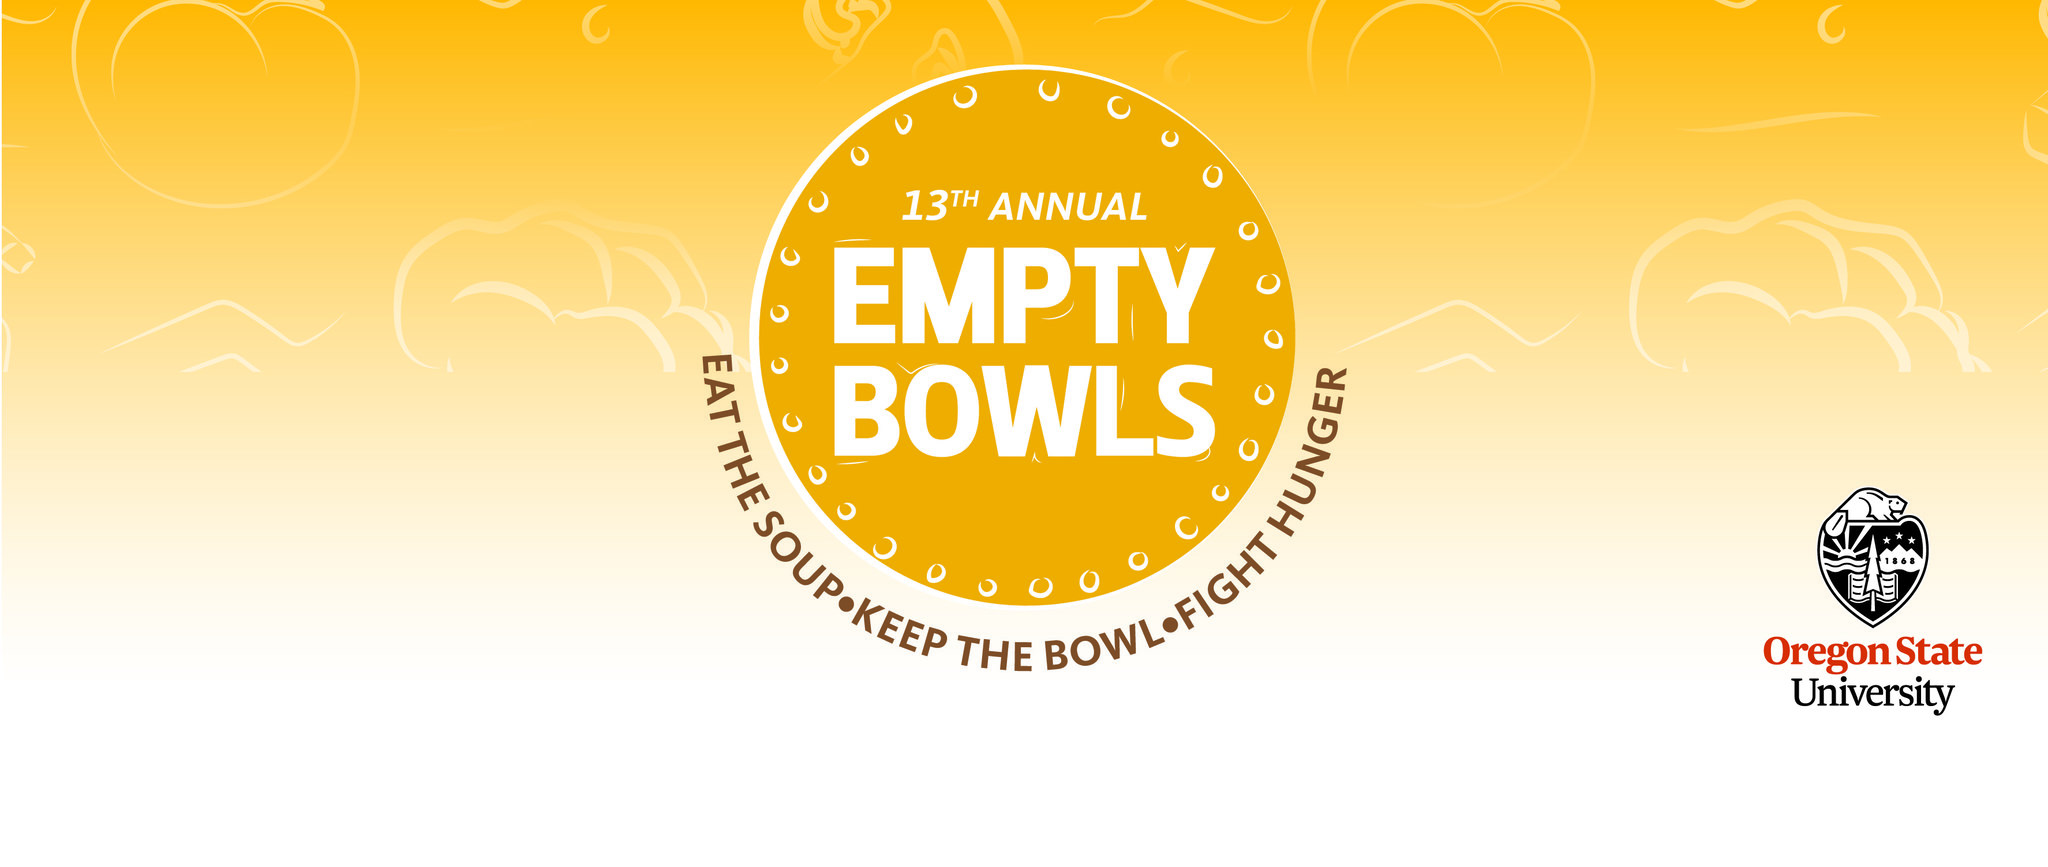 13th Annual Empty Bowls: Eat the soup, keep the bowl, fight hunger